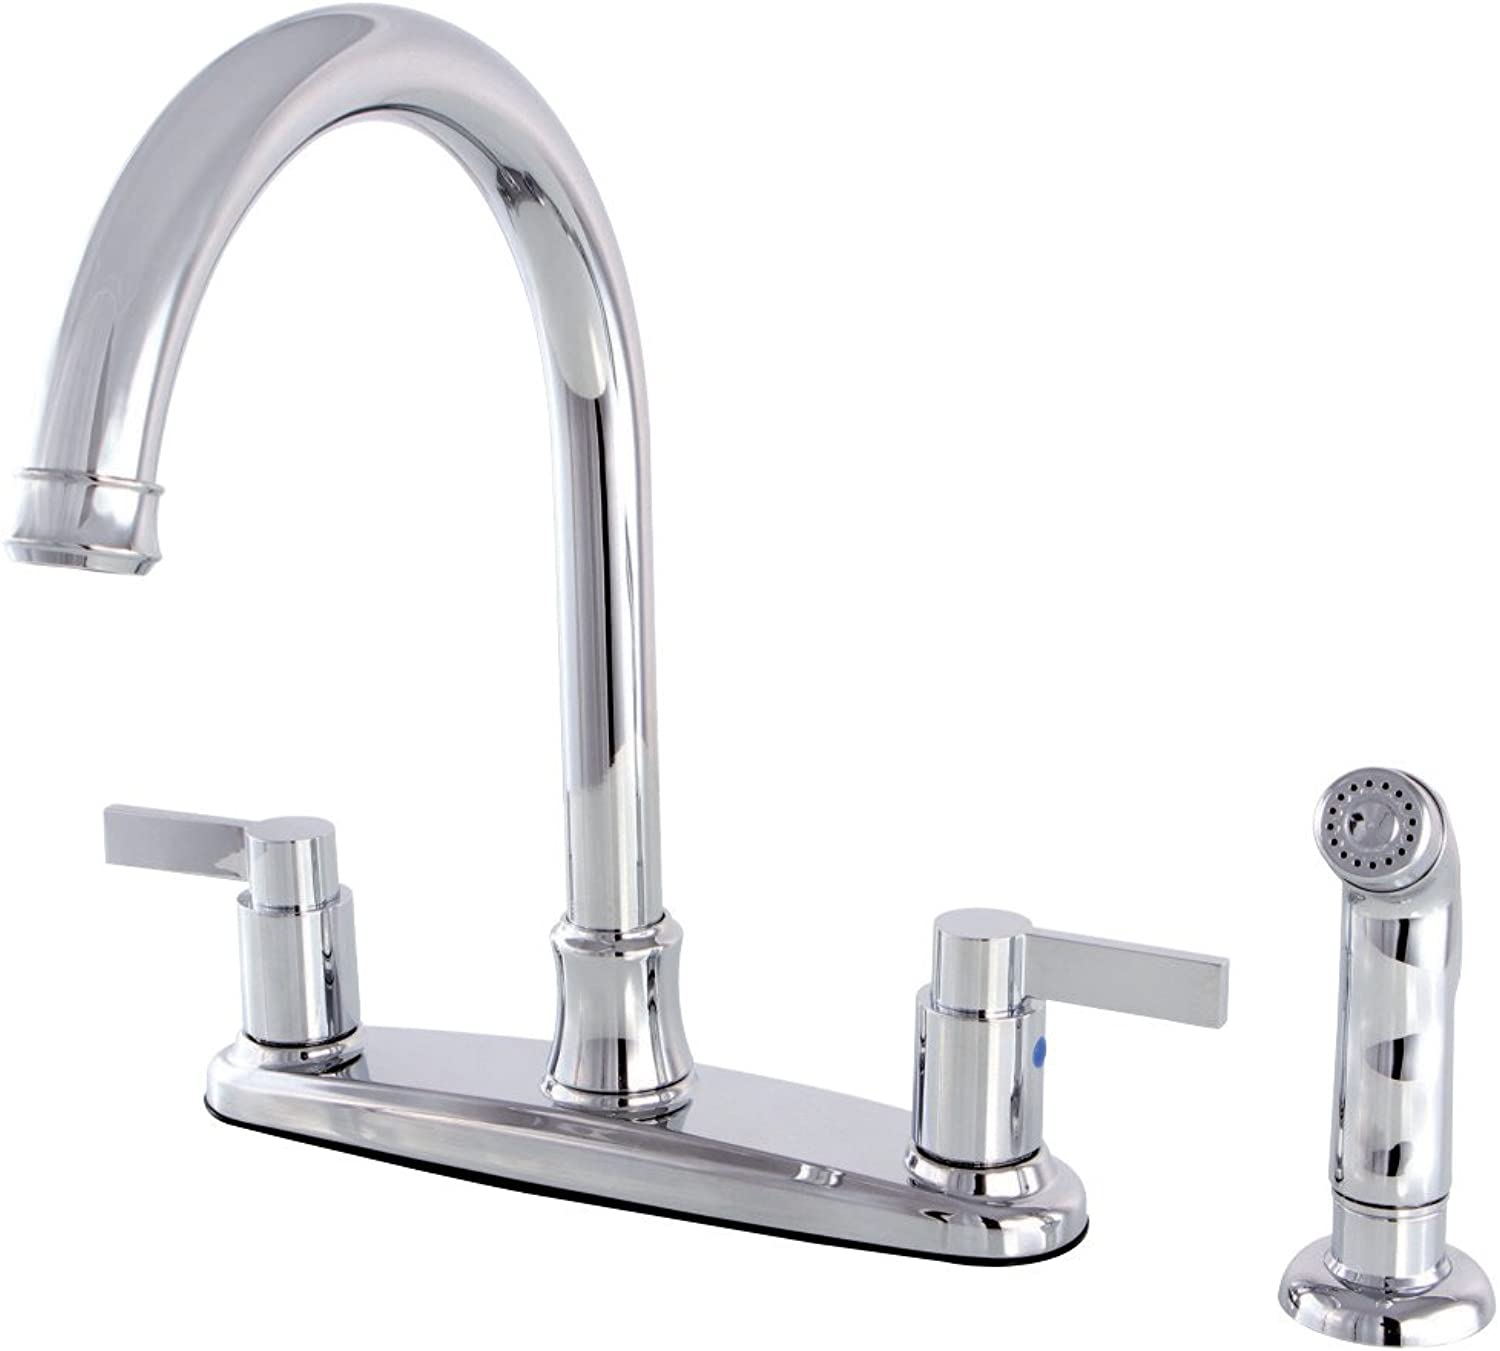 Kingston Brass FB7791NDLSP NuvoFusion 8-inch Centerset Kitchen Faucet, Chrome